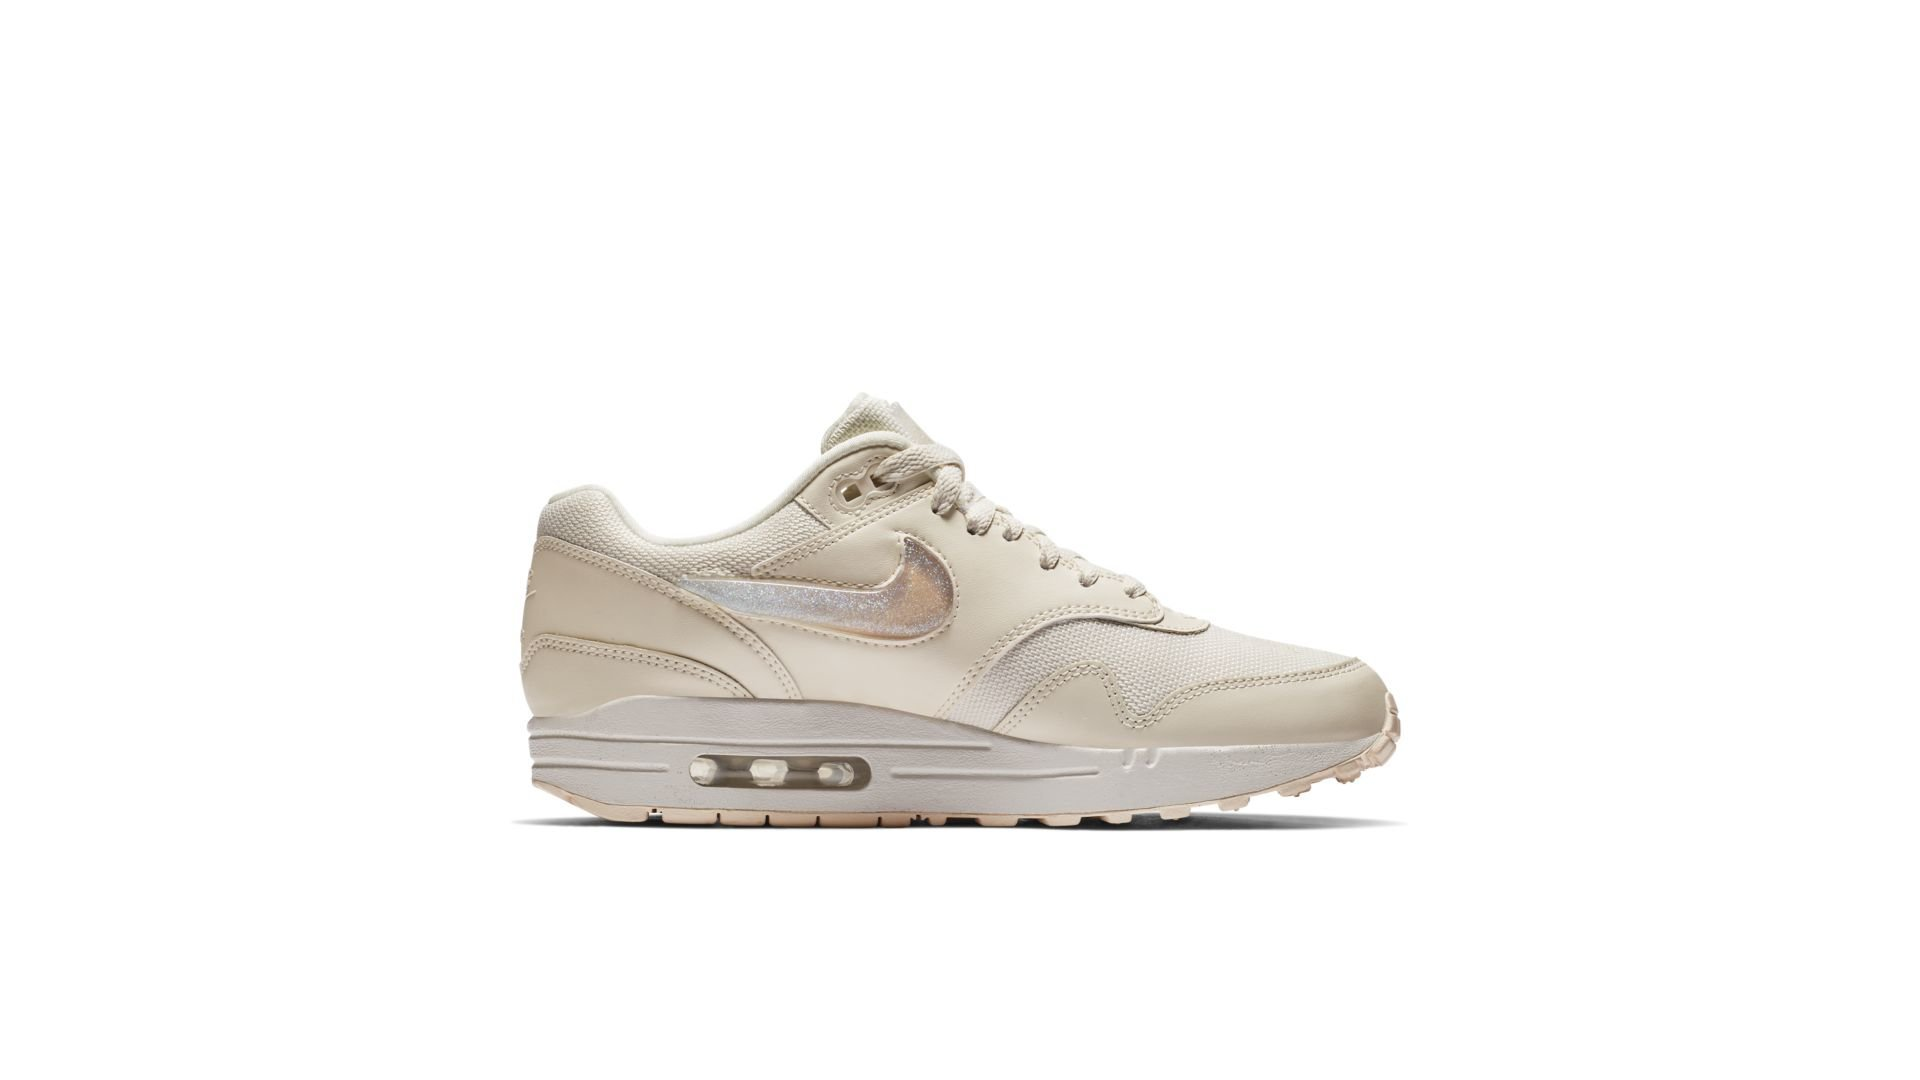 Nike Wmns Air Max 1 JP Pale IvorySummit WhiteGuava Ice AT5248100